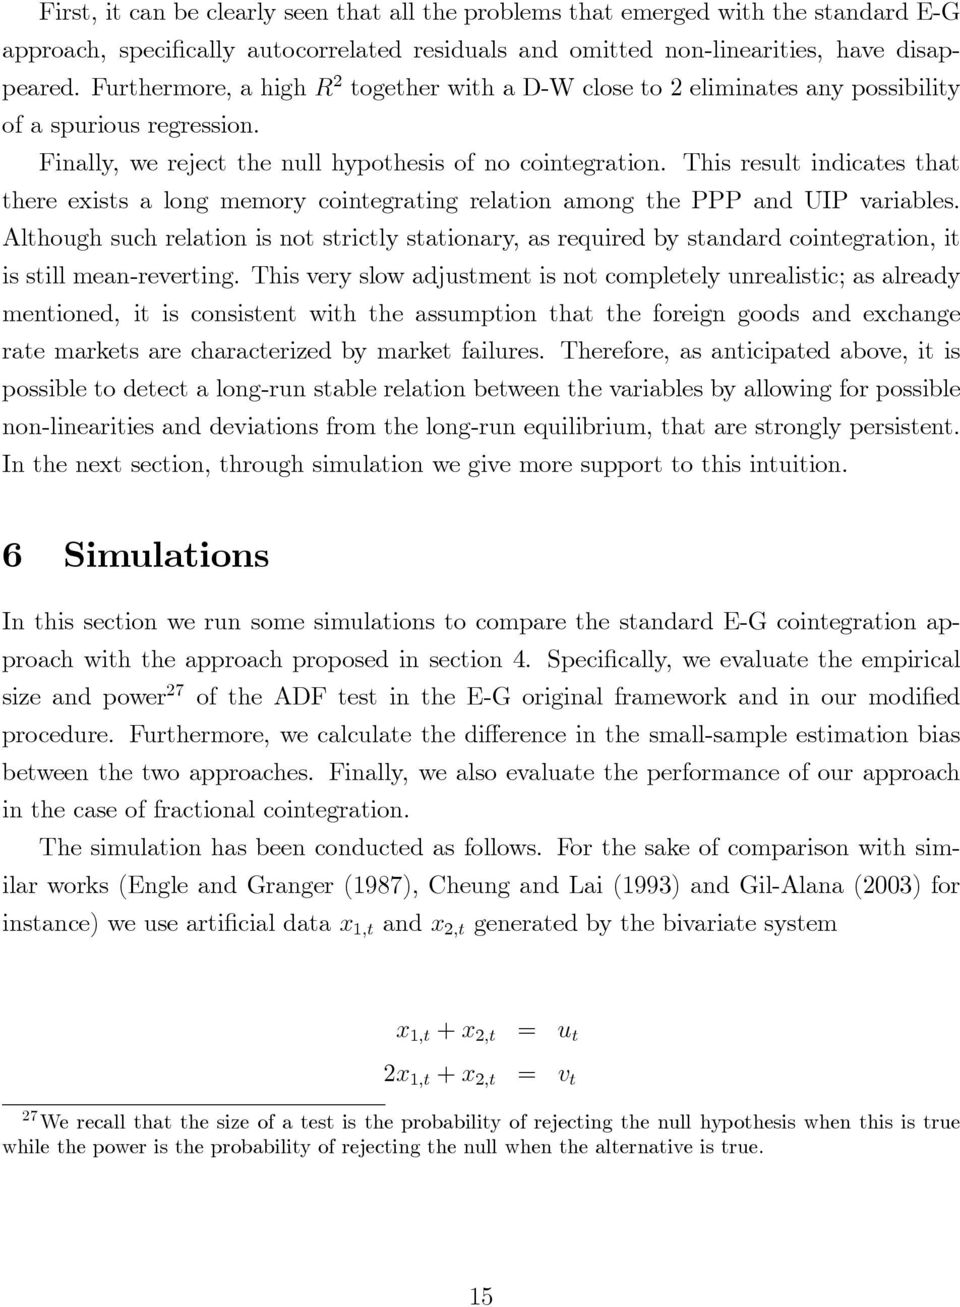 This result indicates that there exists a long memory cointegrating relation among the PPP and UIP variables.